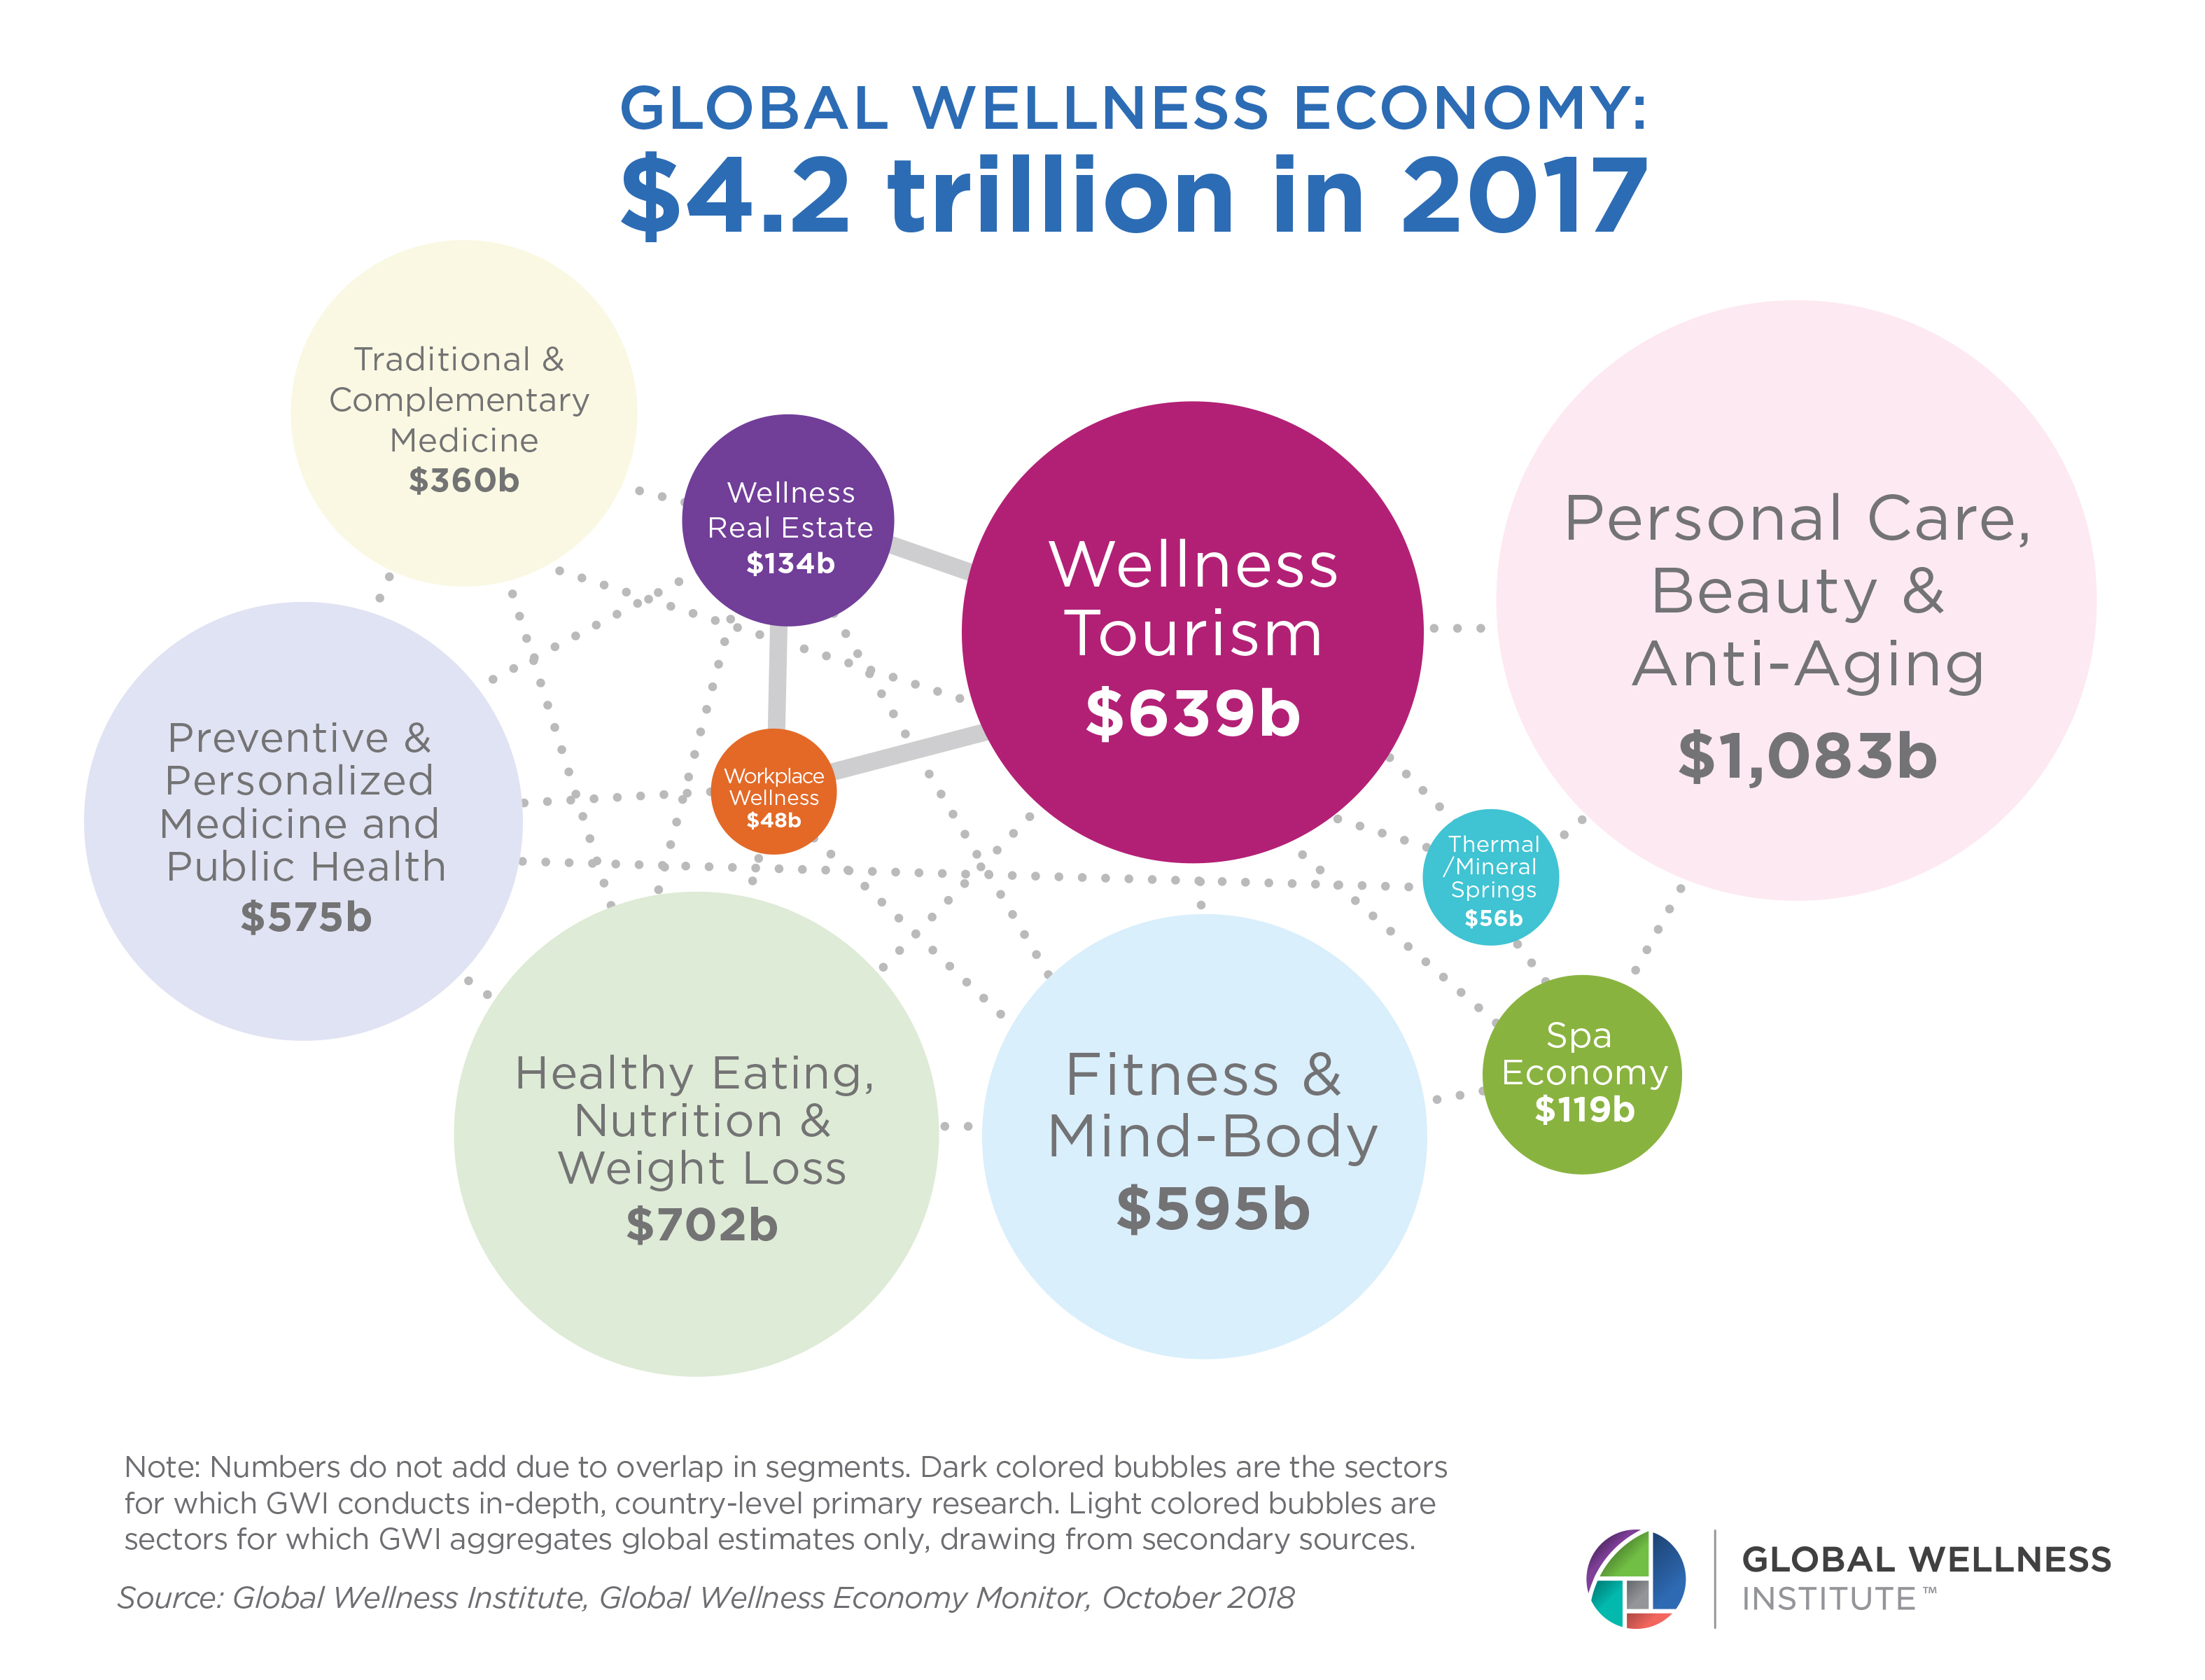 Statistics & Facts - Global Wellness Institute